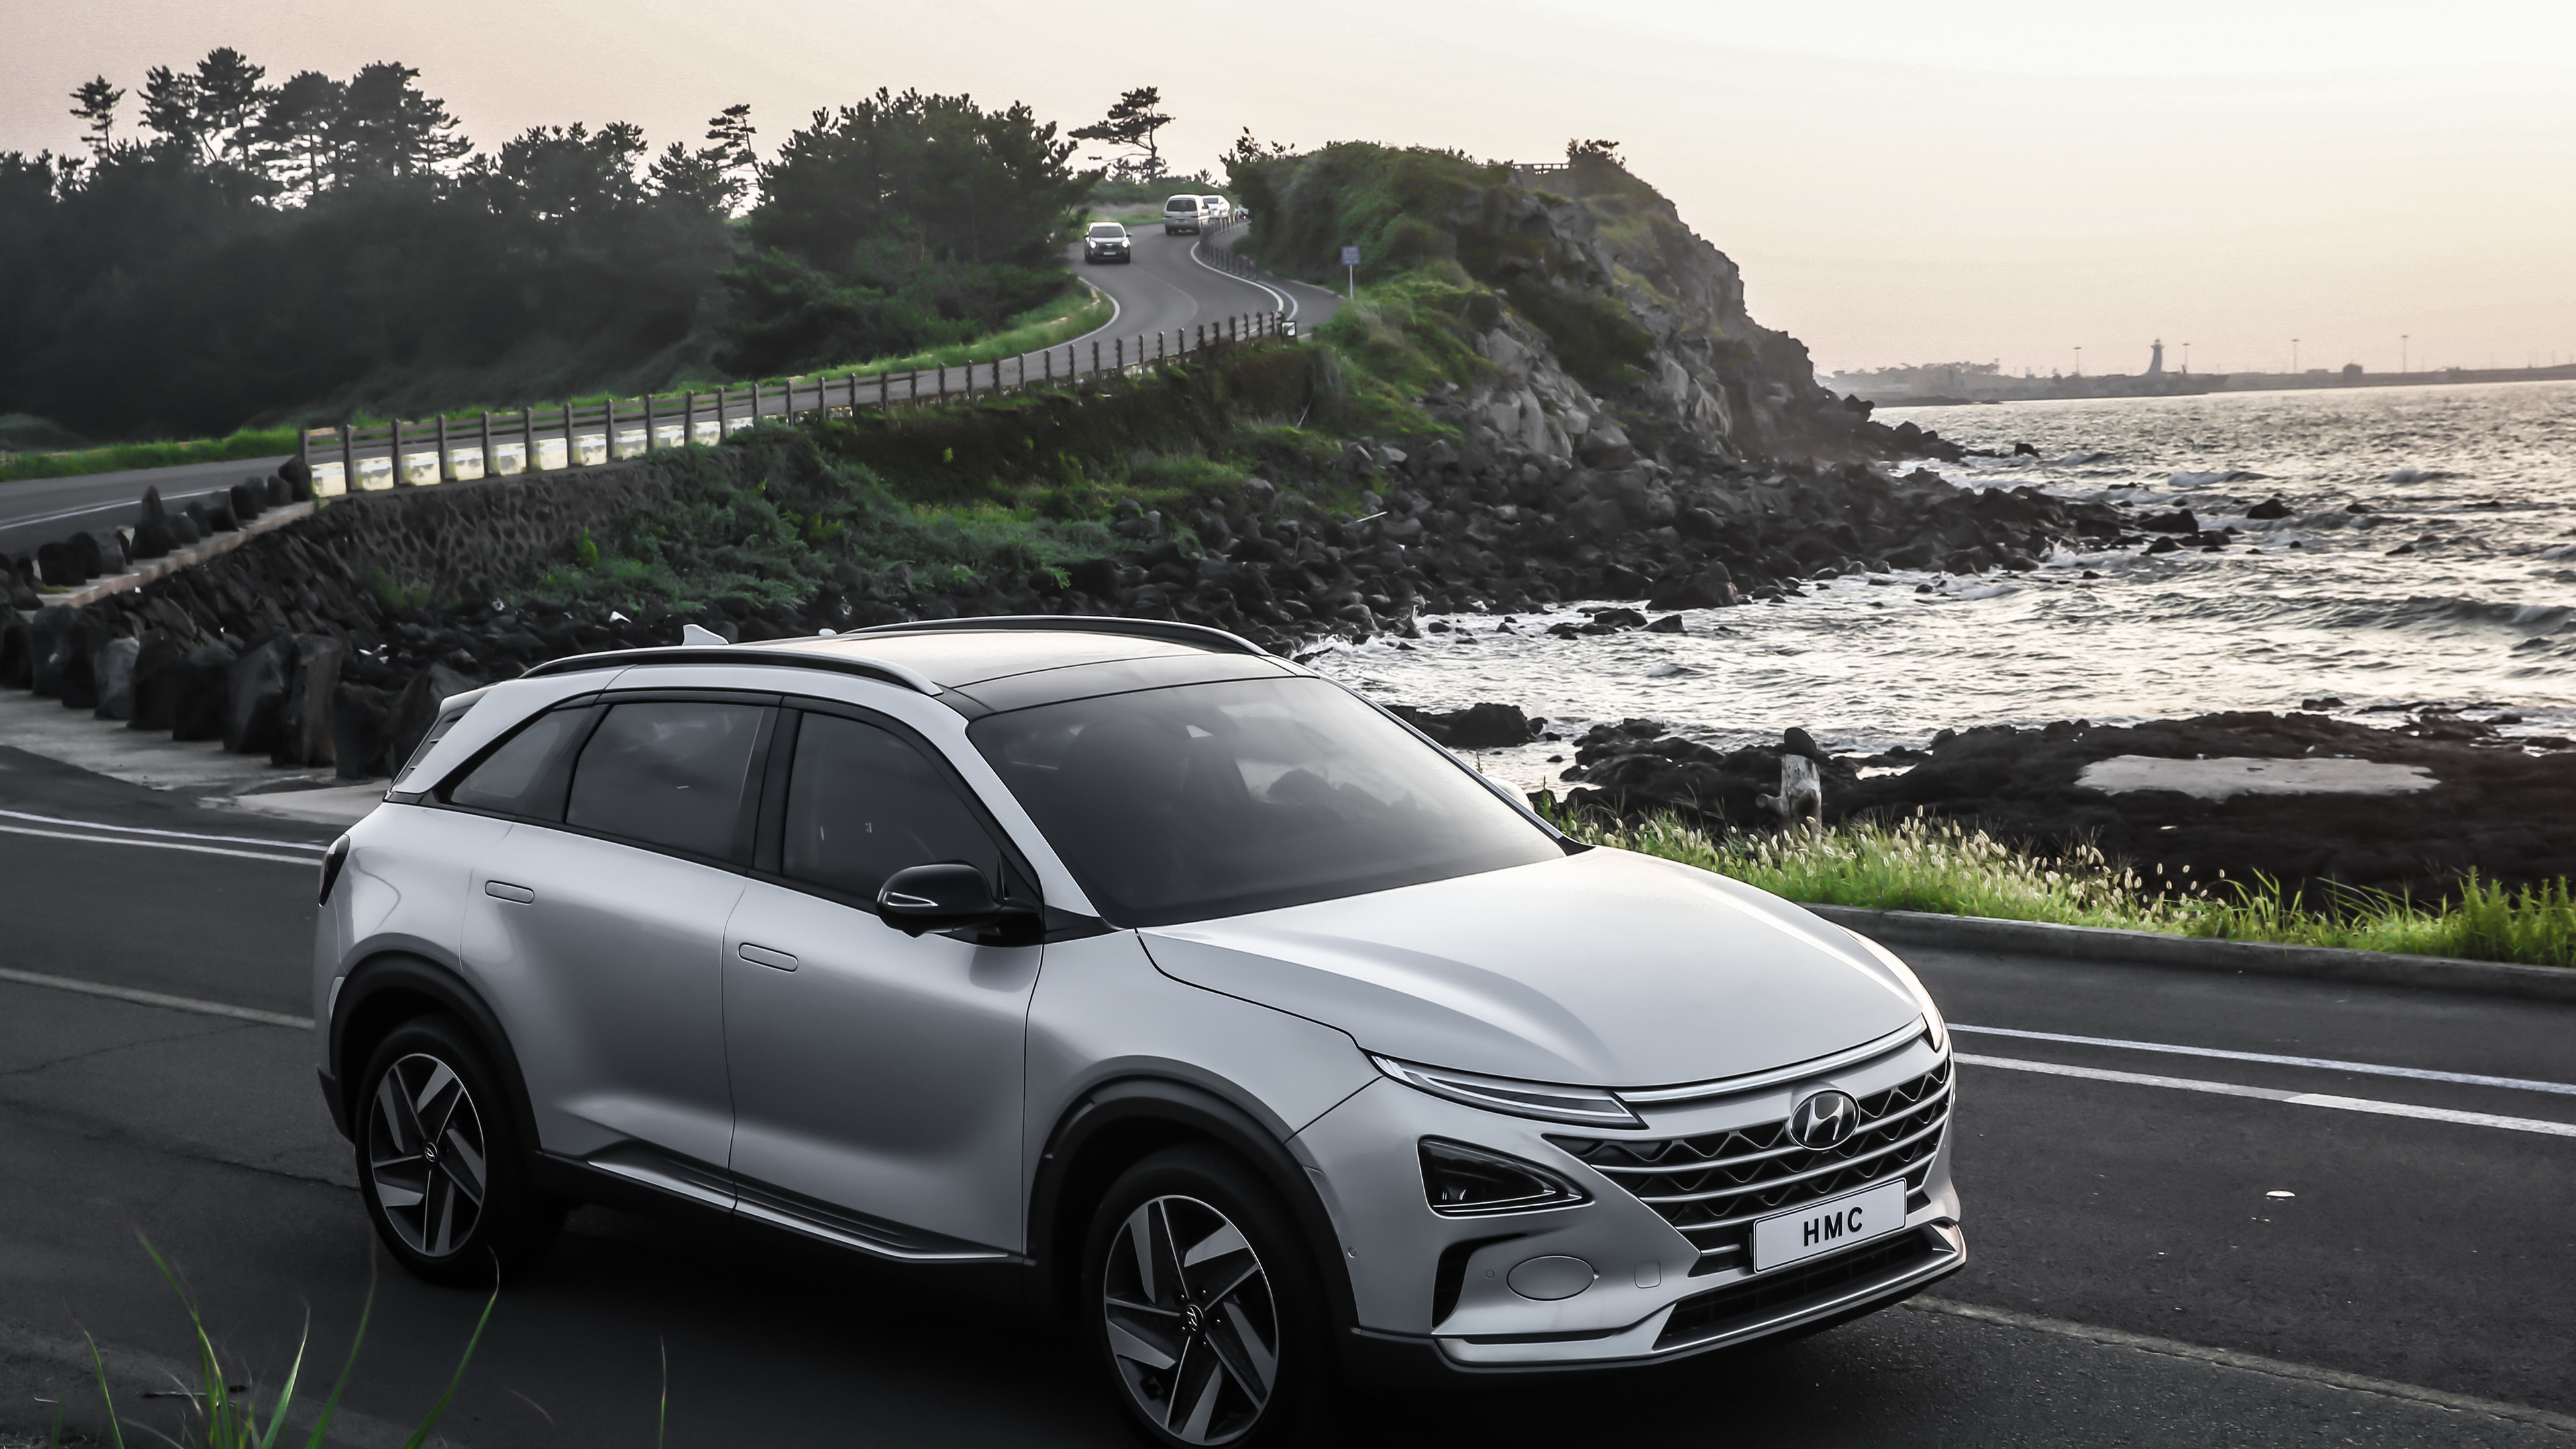 2018 hyundai nexo 1539108993 - 2018 Hyundai Nexo - hyundai wallpapers, hyundai nexo wallpapers, hd-wallpapers, 4k-wallpapers, 2018 cars wallpapers